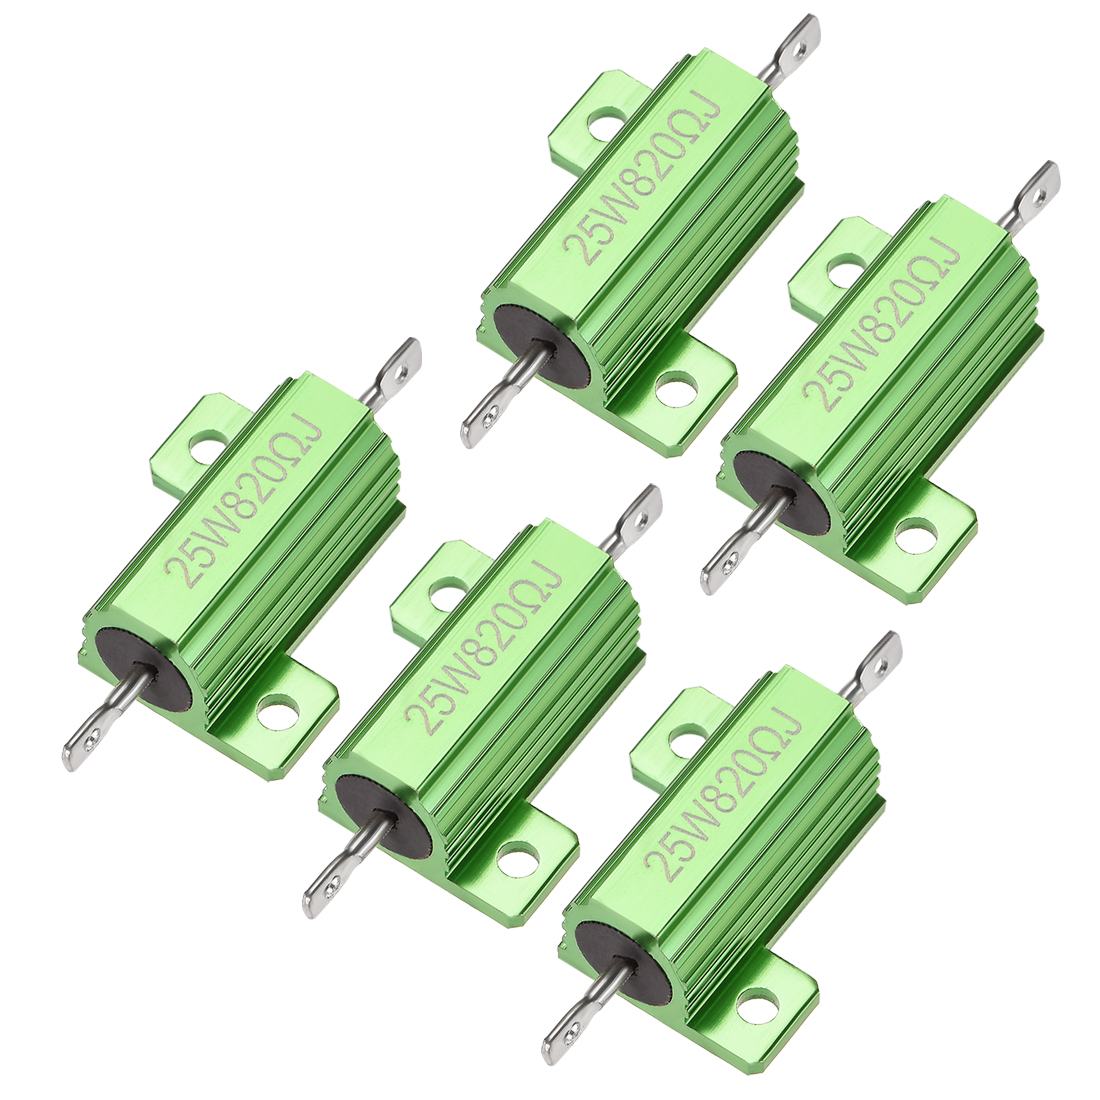 25W 820 Ohm 5% Aluminum Housing Resistor Wirewound Resistor Green Tone 5 Pcs